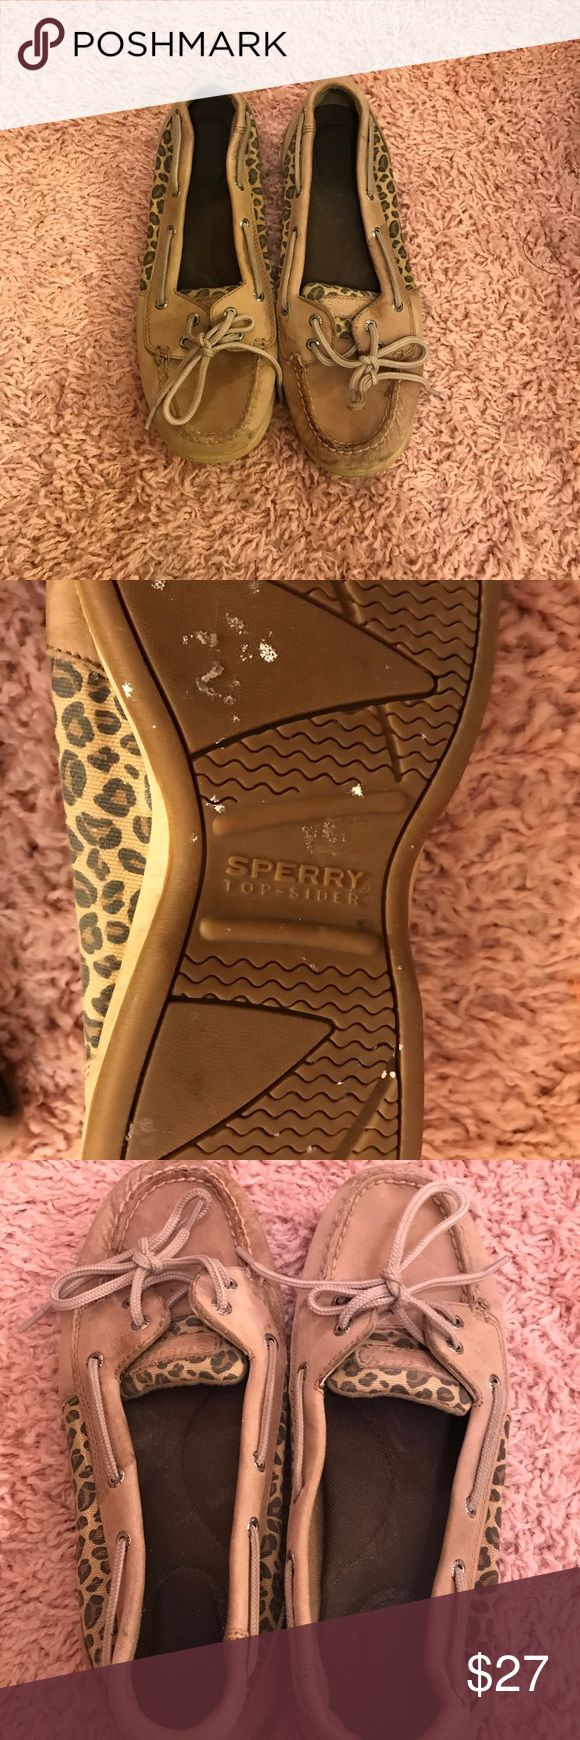 Leopard sperrys Sperrys! These shoes are worn but still have a lot of life left in them. The souls are in great condition. The pictures don't do them justice. These shoes are very sturdy. Sperry Top-Sider Shoes Flats & Loafers